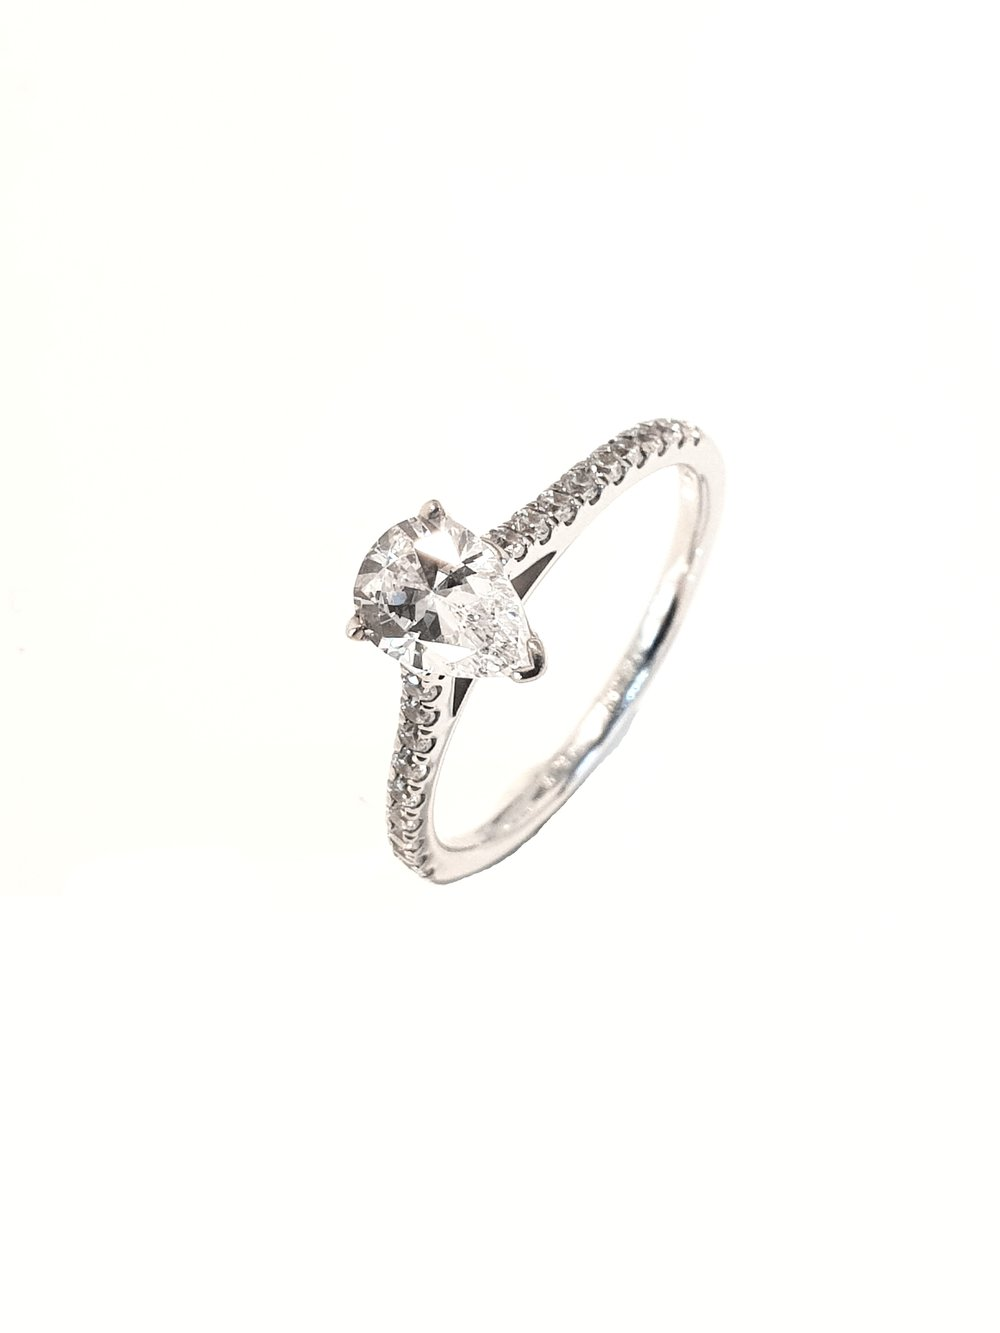 Raphael Collection, Pear 3 Claw Set Ring  .75ct, G, SI1 + .25ct shoulders.  Stock Code: Z1425  18ct White Gold: £2700  Platinum: £2820  Made To Order, approx 3 weeks.